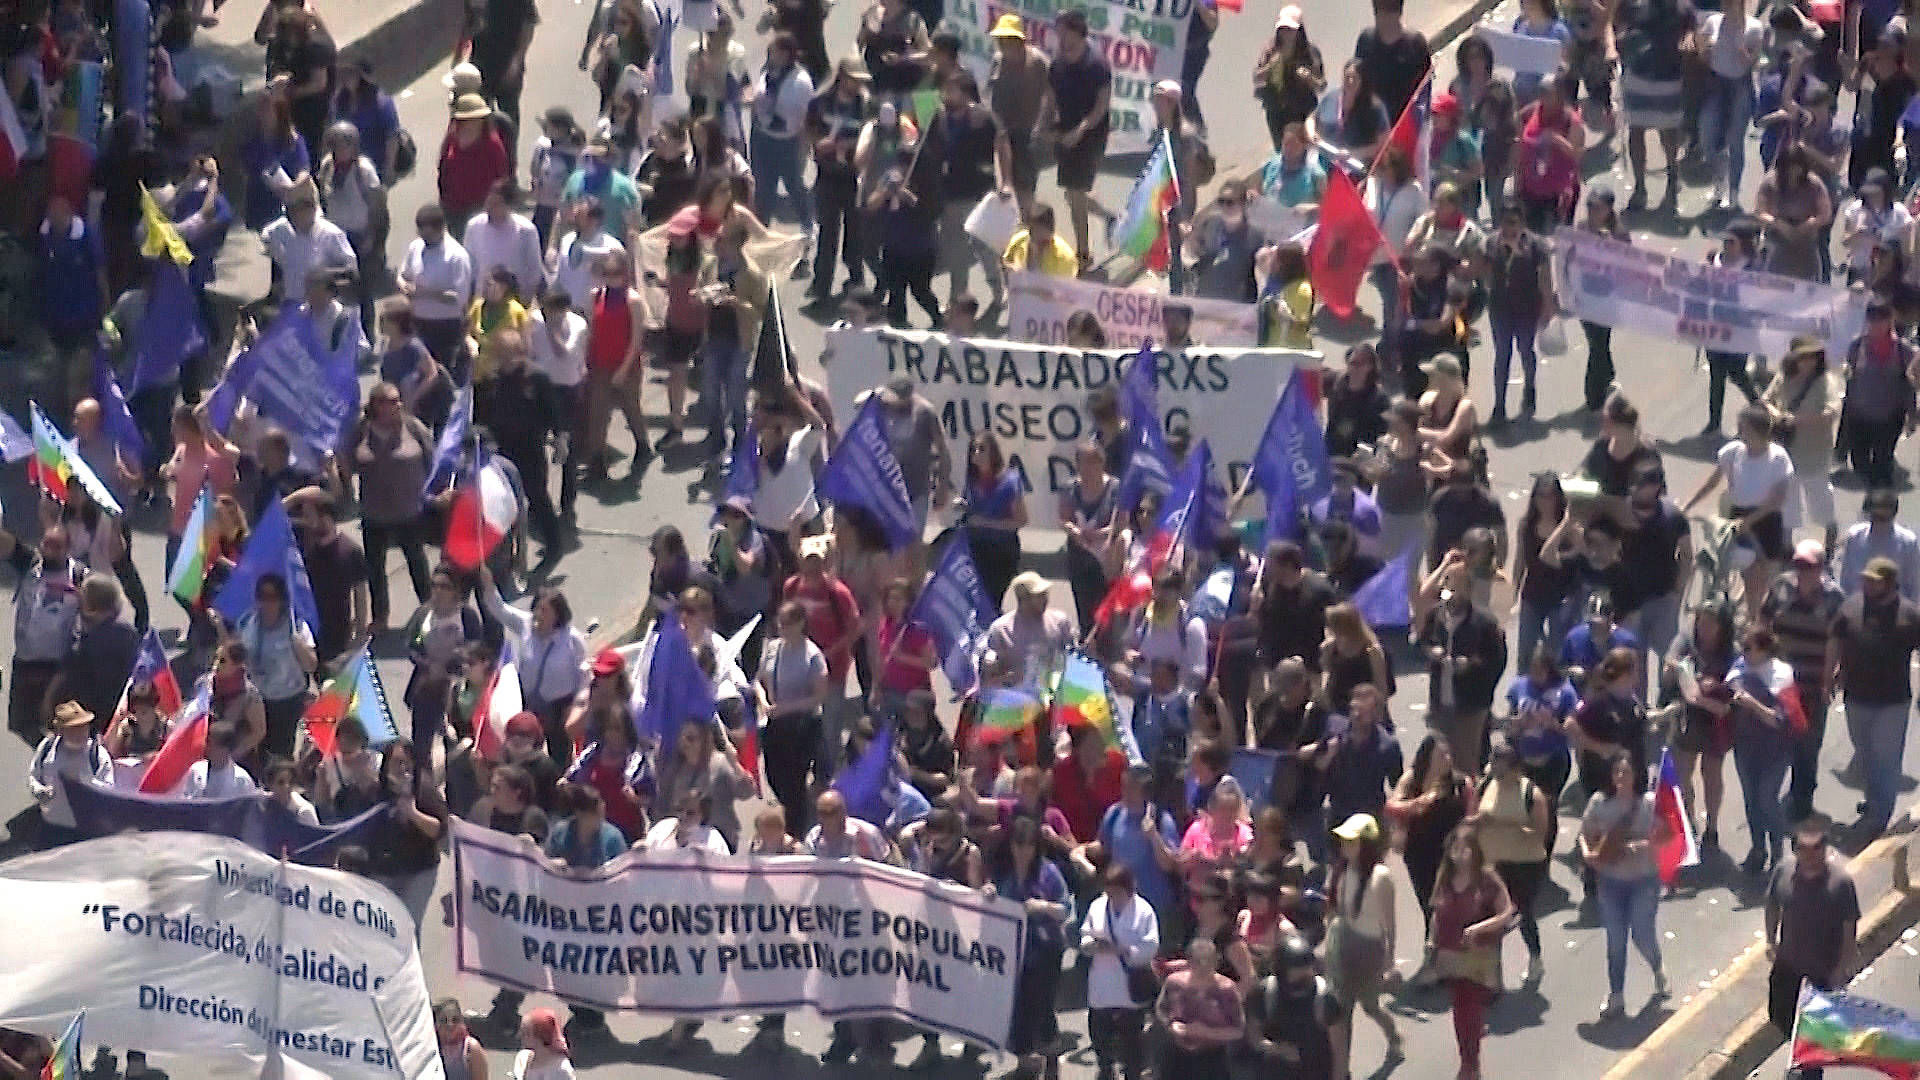 Chilean Activist: Same Elites Who Caused Social Crisis Can't Be Trusted to Write New Constitution